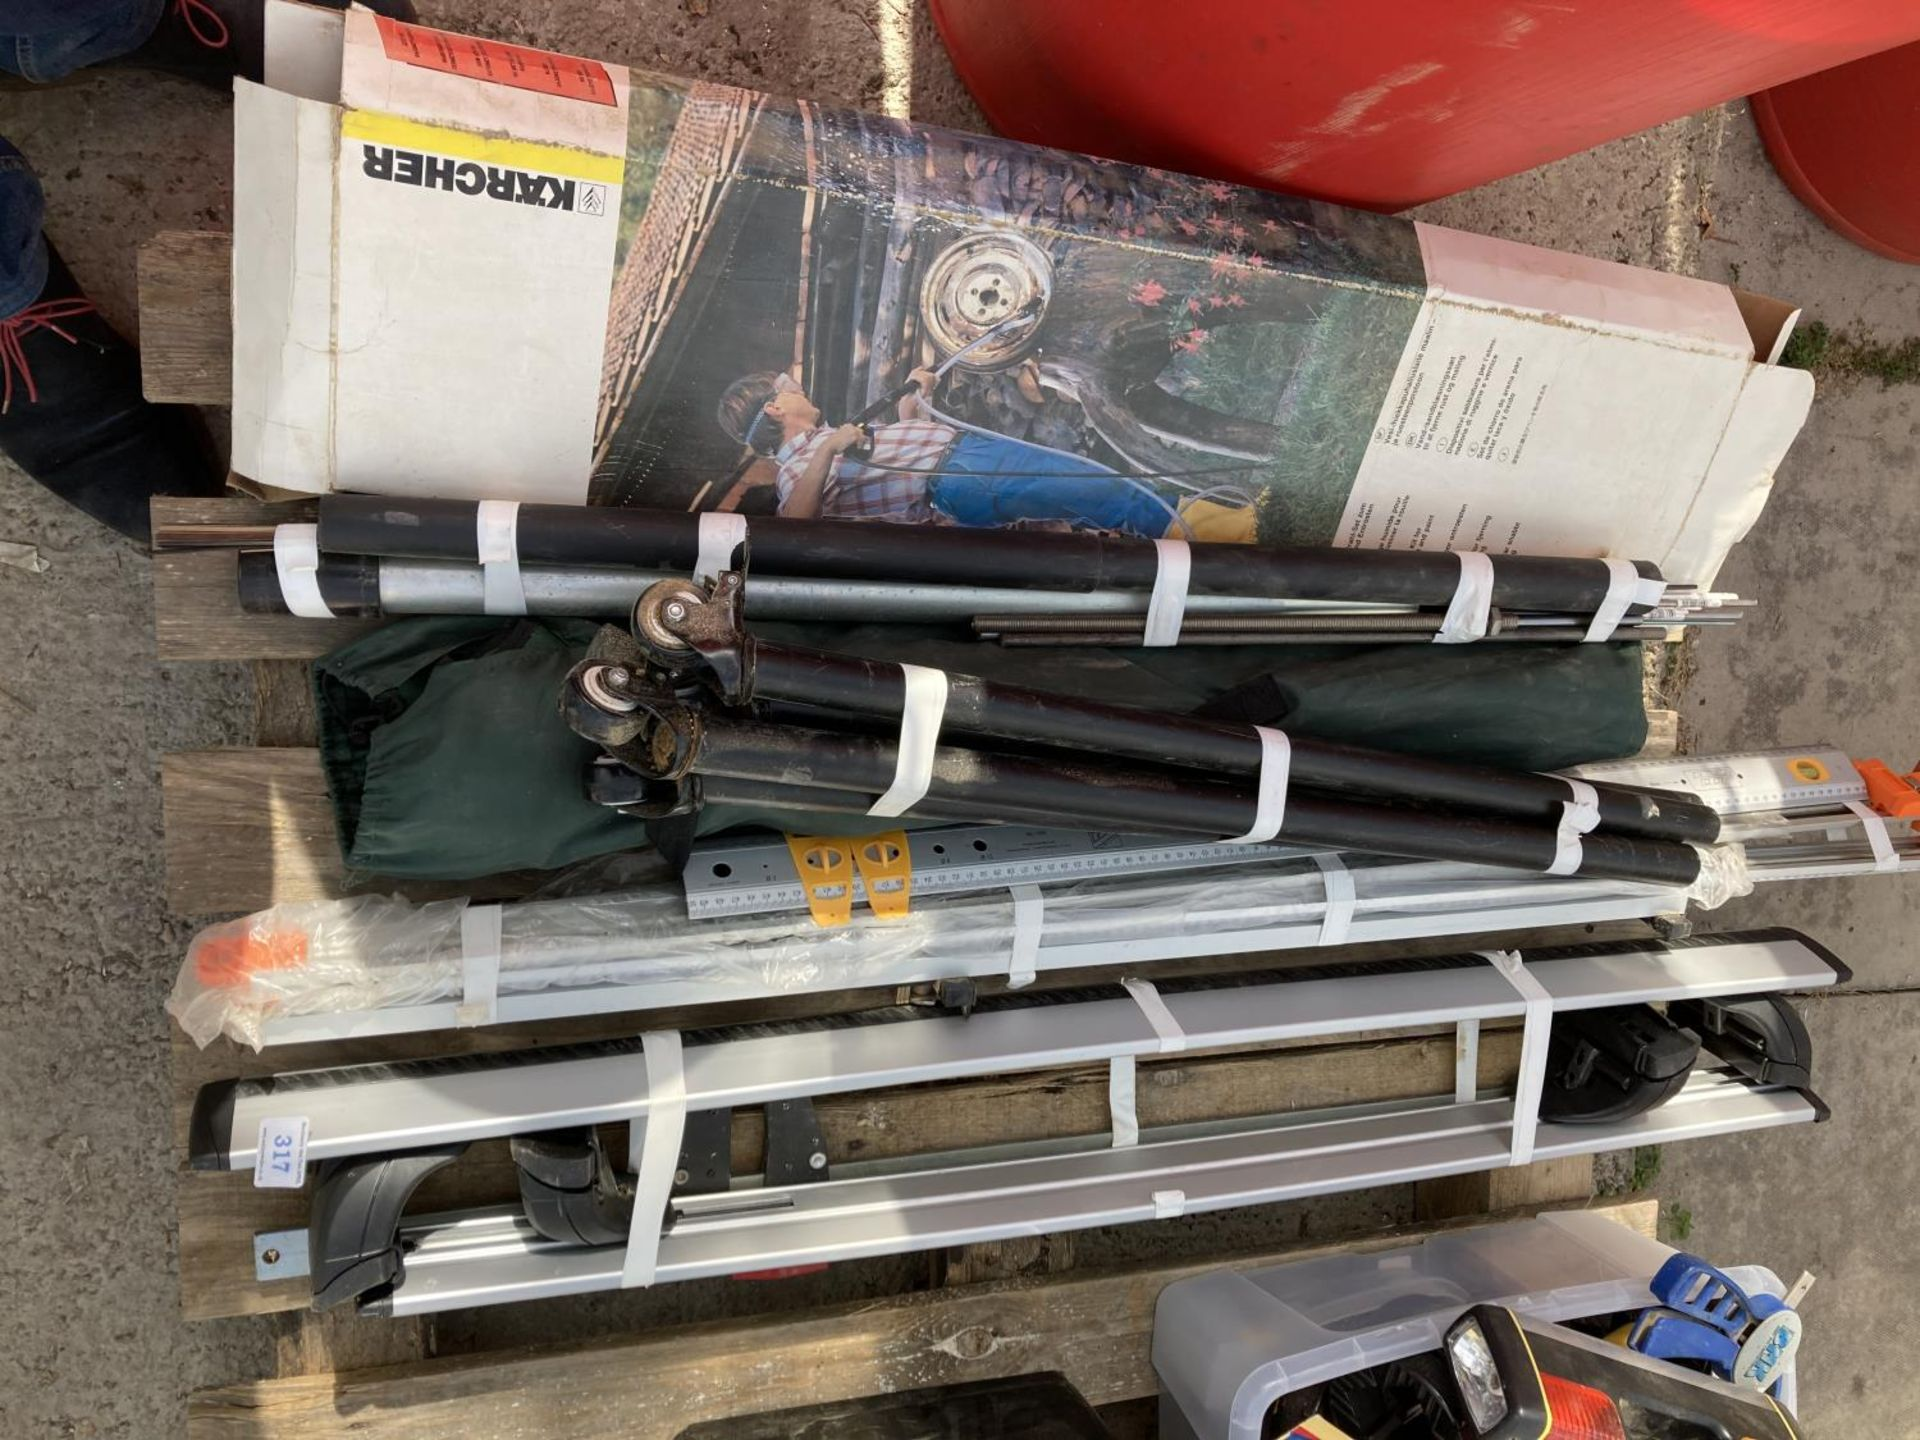 VARIOUS ITEMS TO INCLUDE CLAMPS, ROOF RACK, KARCHER LANCE ETC NO VAT